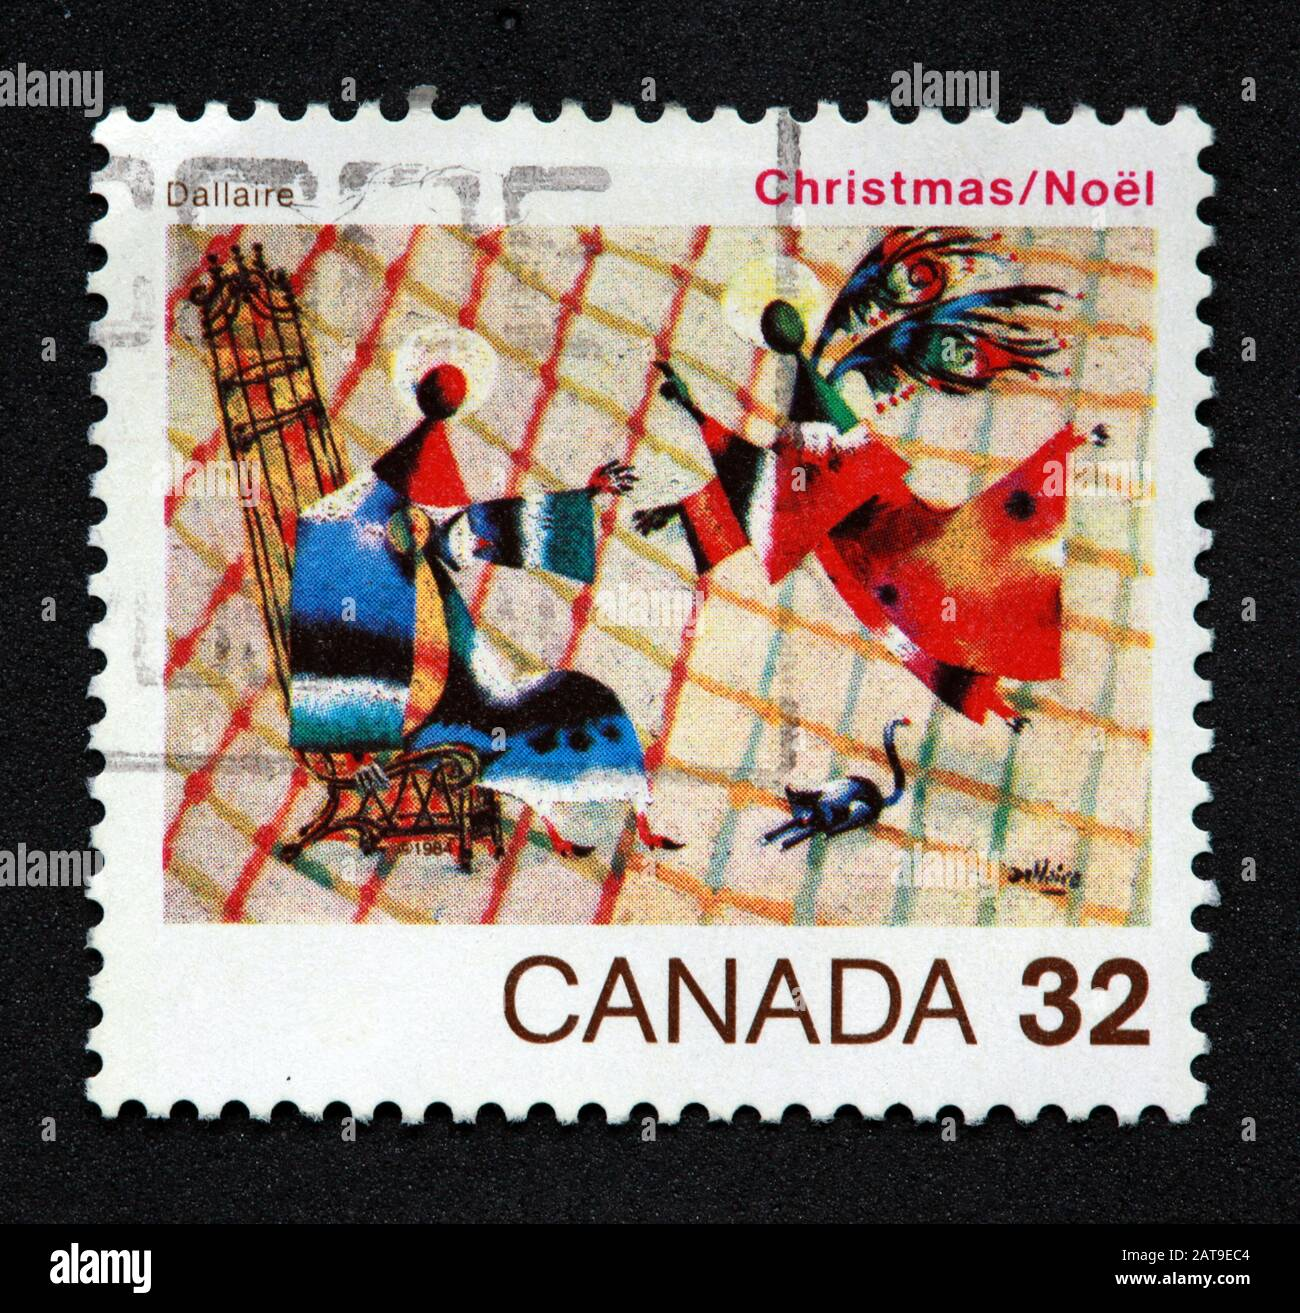 Canadian Stamp, Canada Stamp, Canada Post,used stamp, Canada 32c, Christmas , Noel, Dallaire , angels Stock Photo